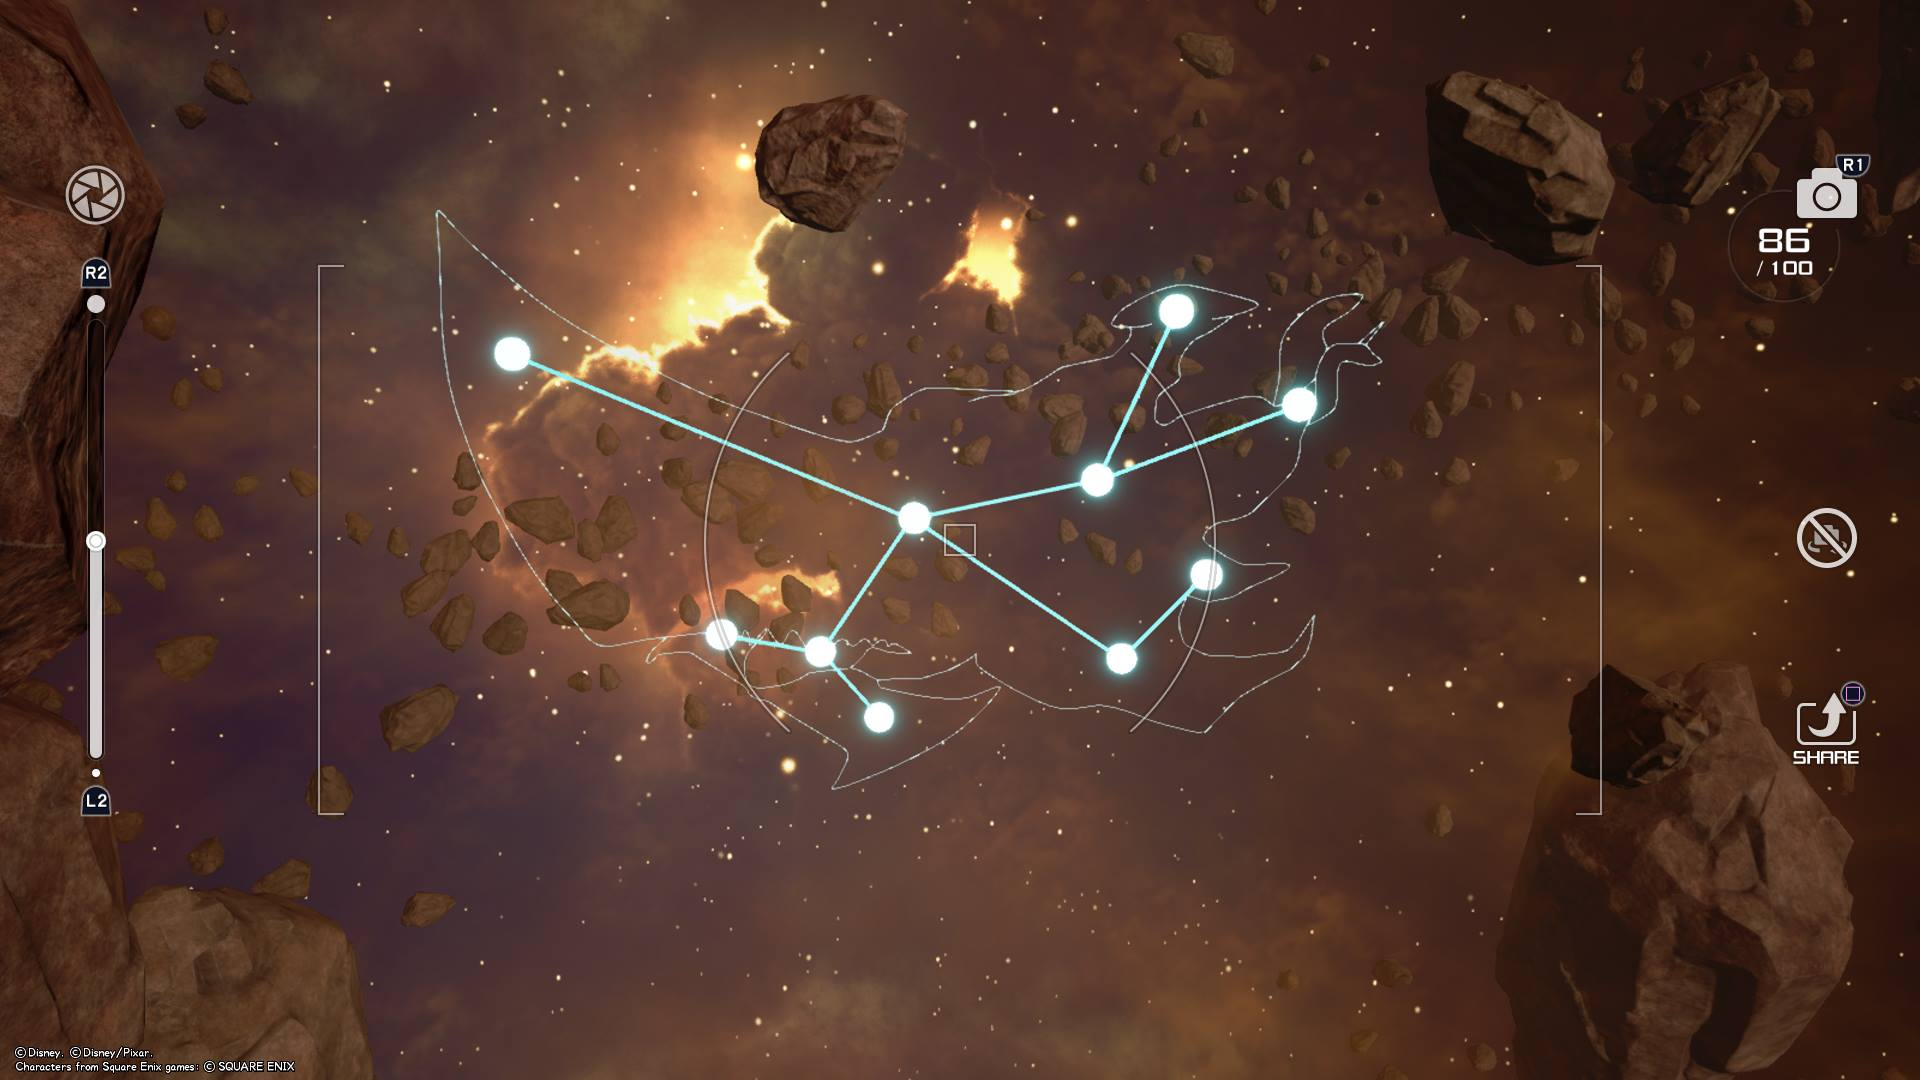 The Bismarck Constellation can be found by placing a marker on Waypoint ECL-01 and flying towards it while above the large ship in the Eclipse galaxy of Kingdom Hearts 3.